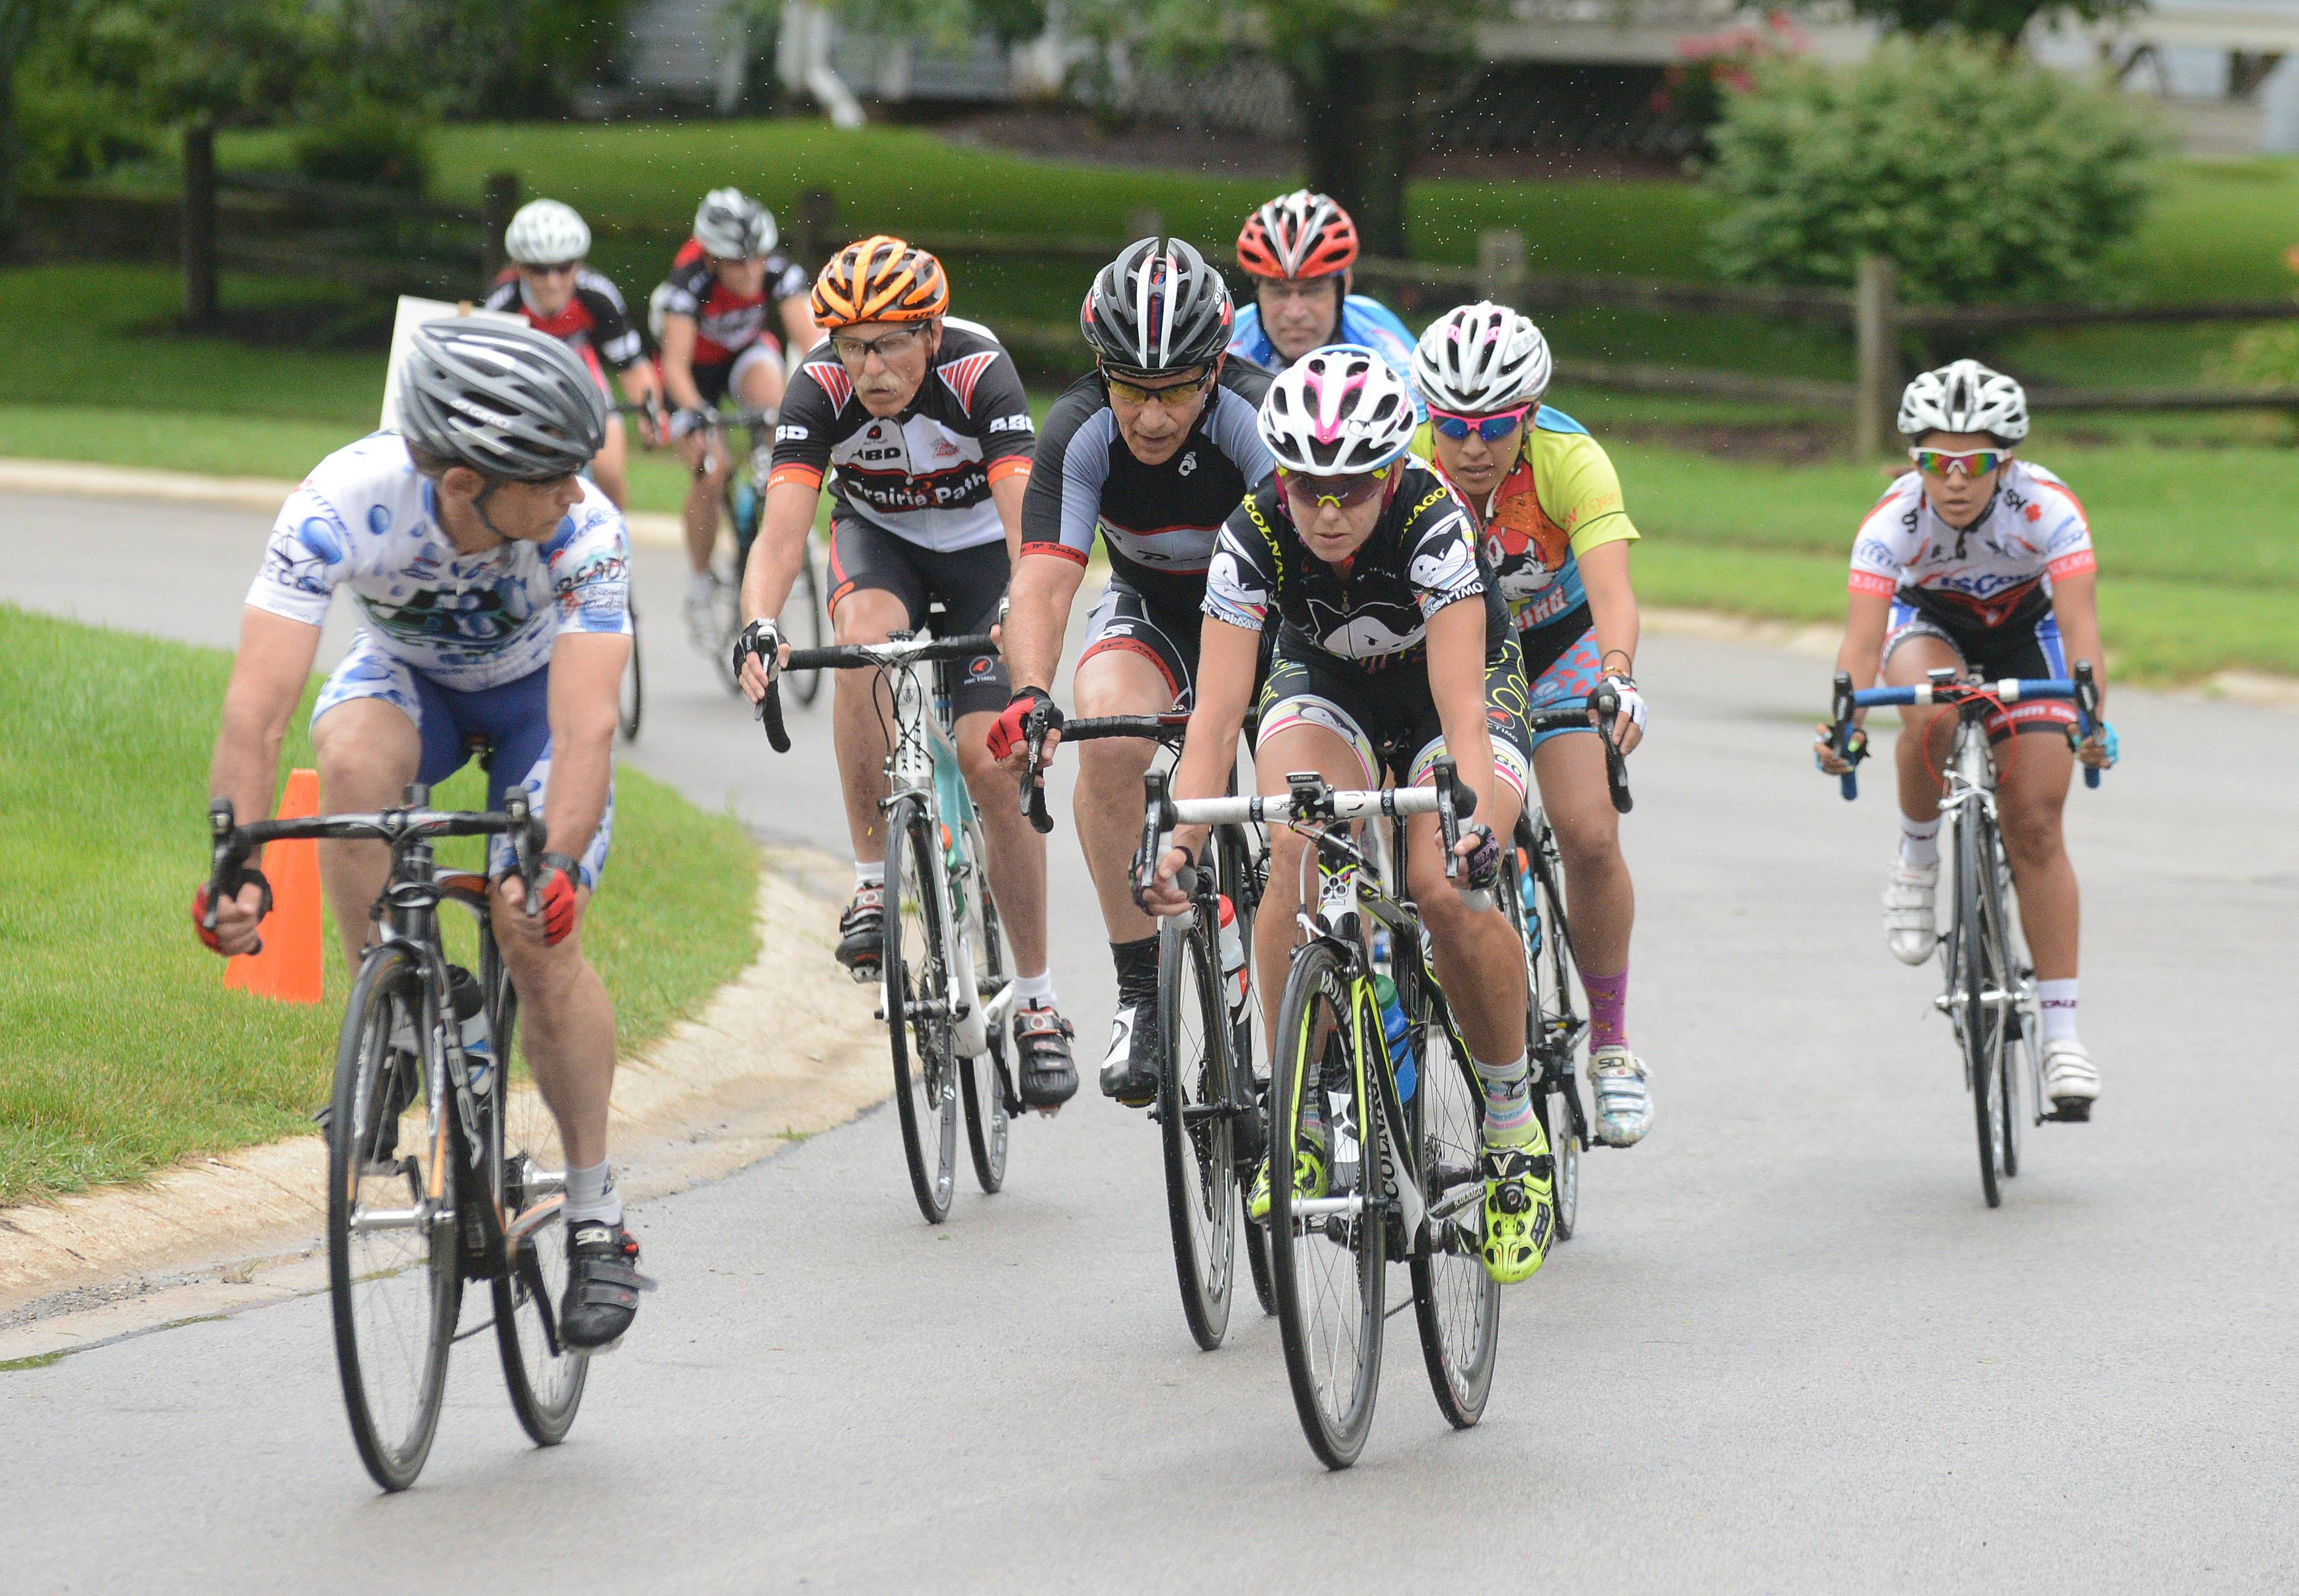 Men and women competitors navigate the 1.2-mile course Saturday during the Winfield Criterium at Oakwood Park.